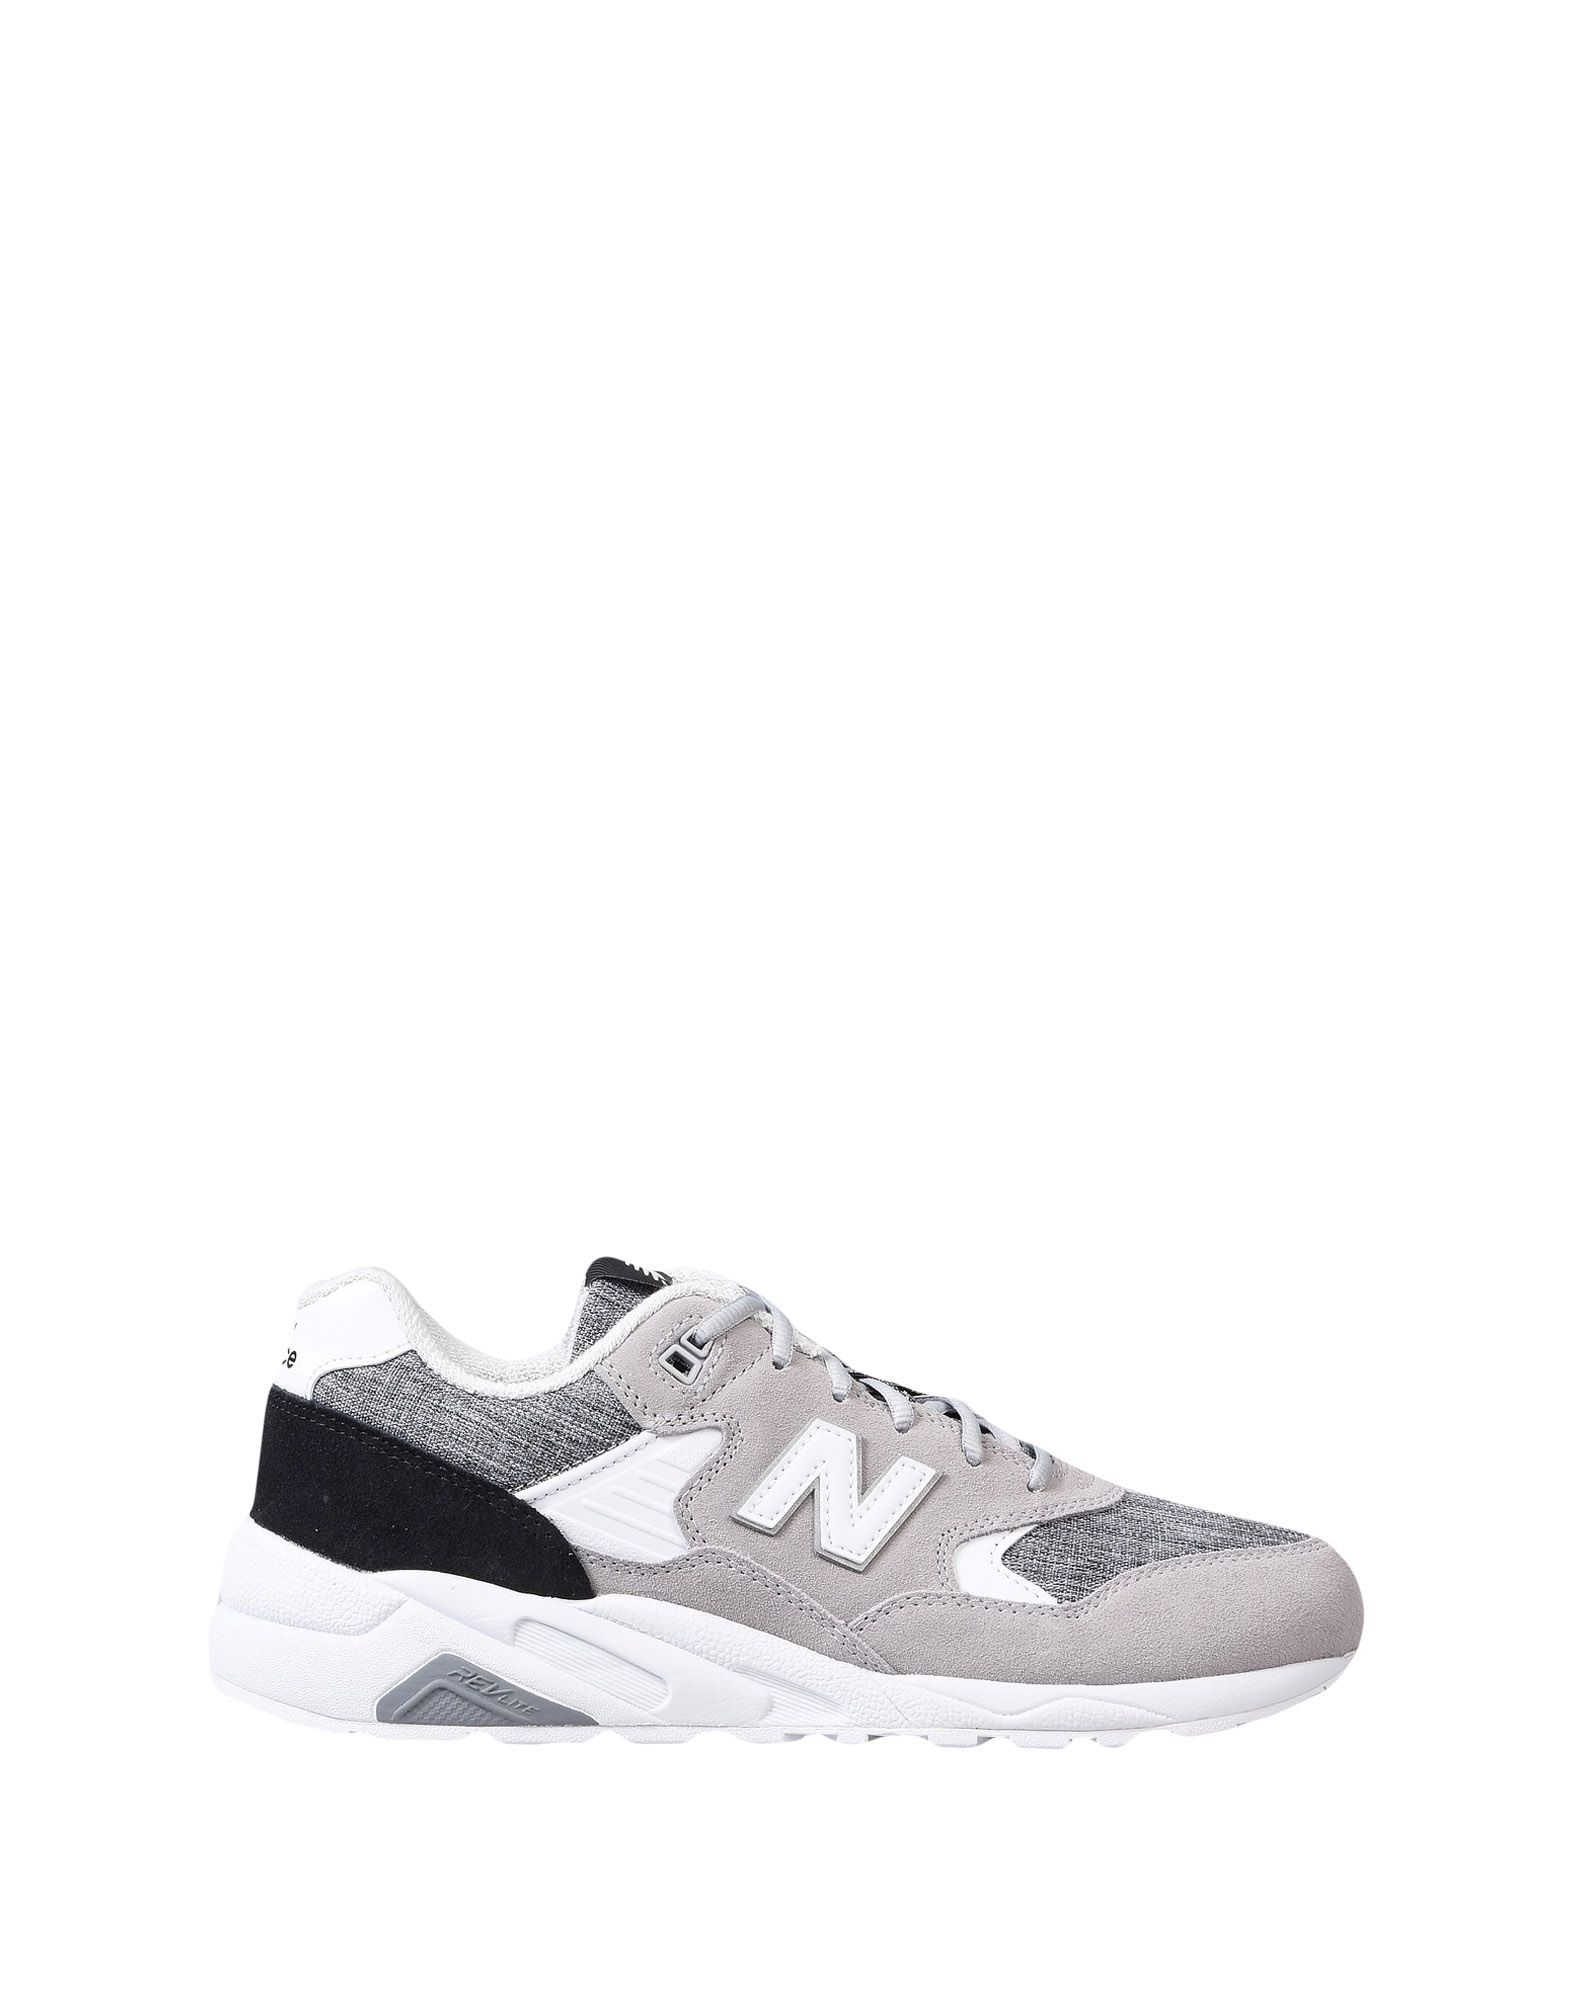 Sneakers New Balance 580 Luxury Textile - Homme - Sneakers New Balance sur